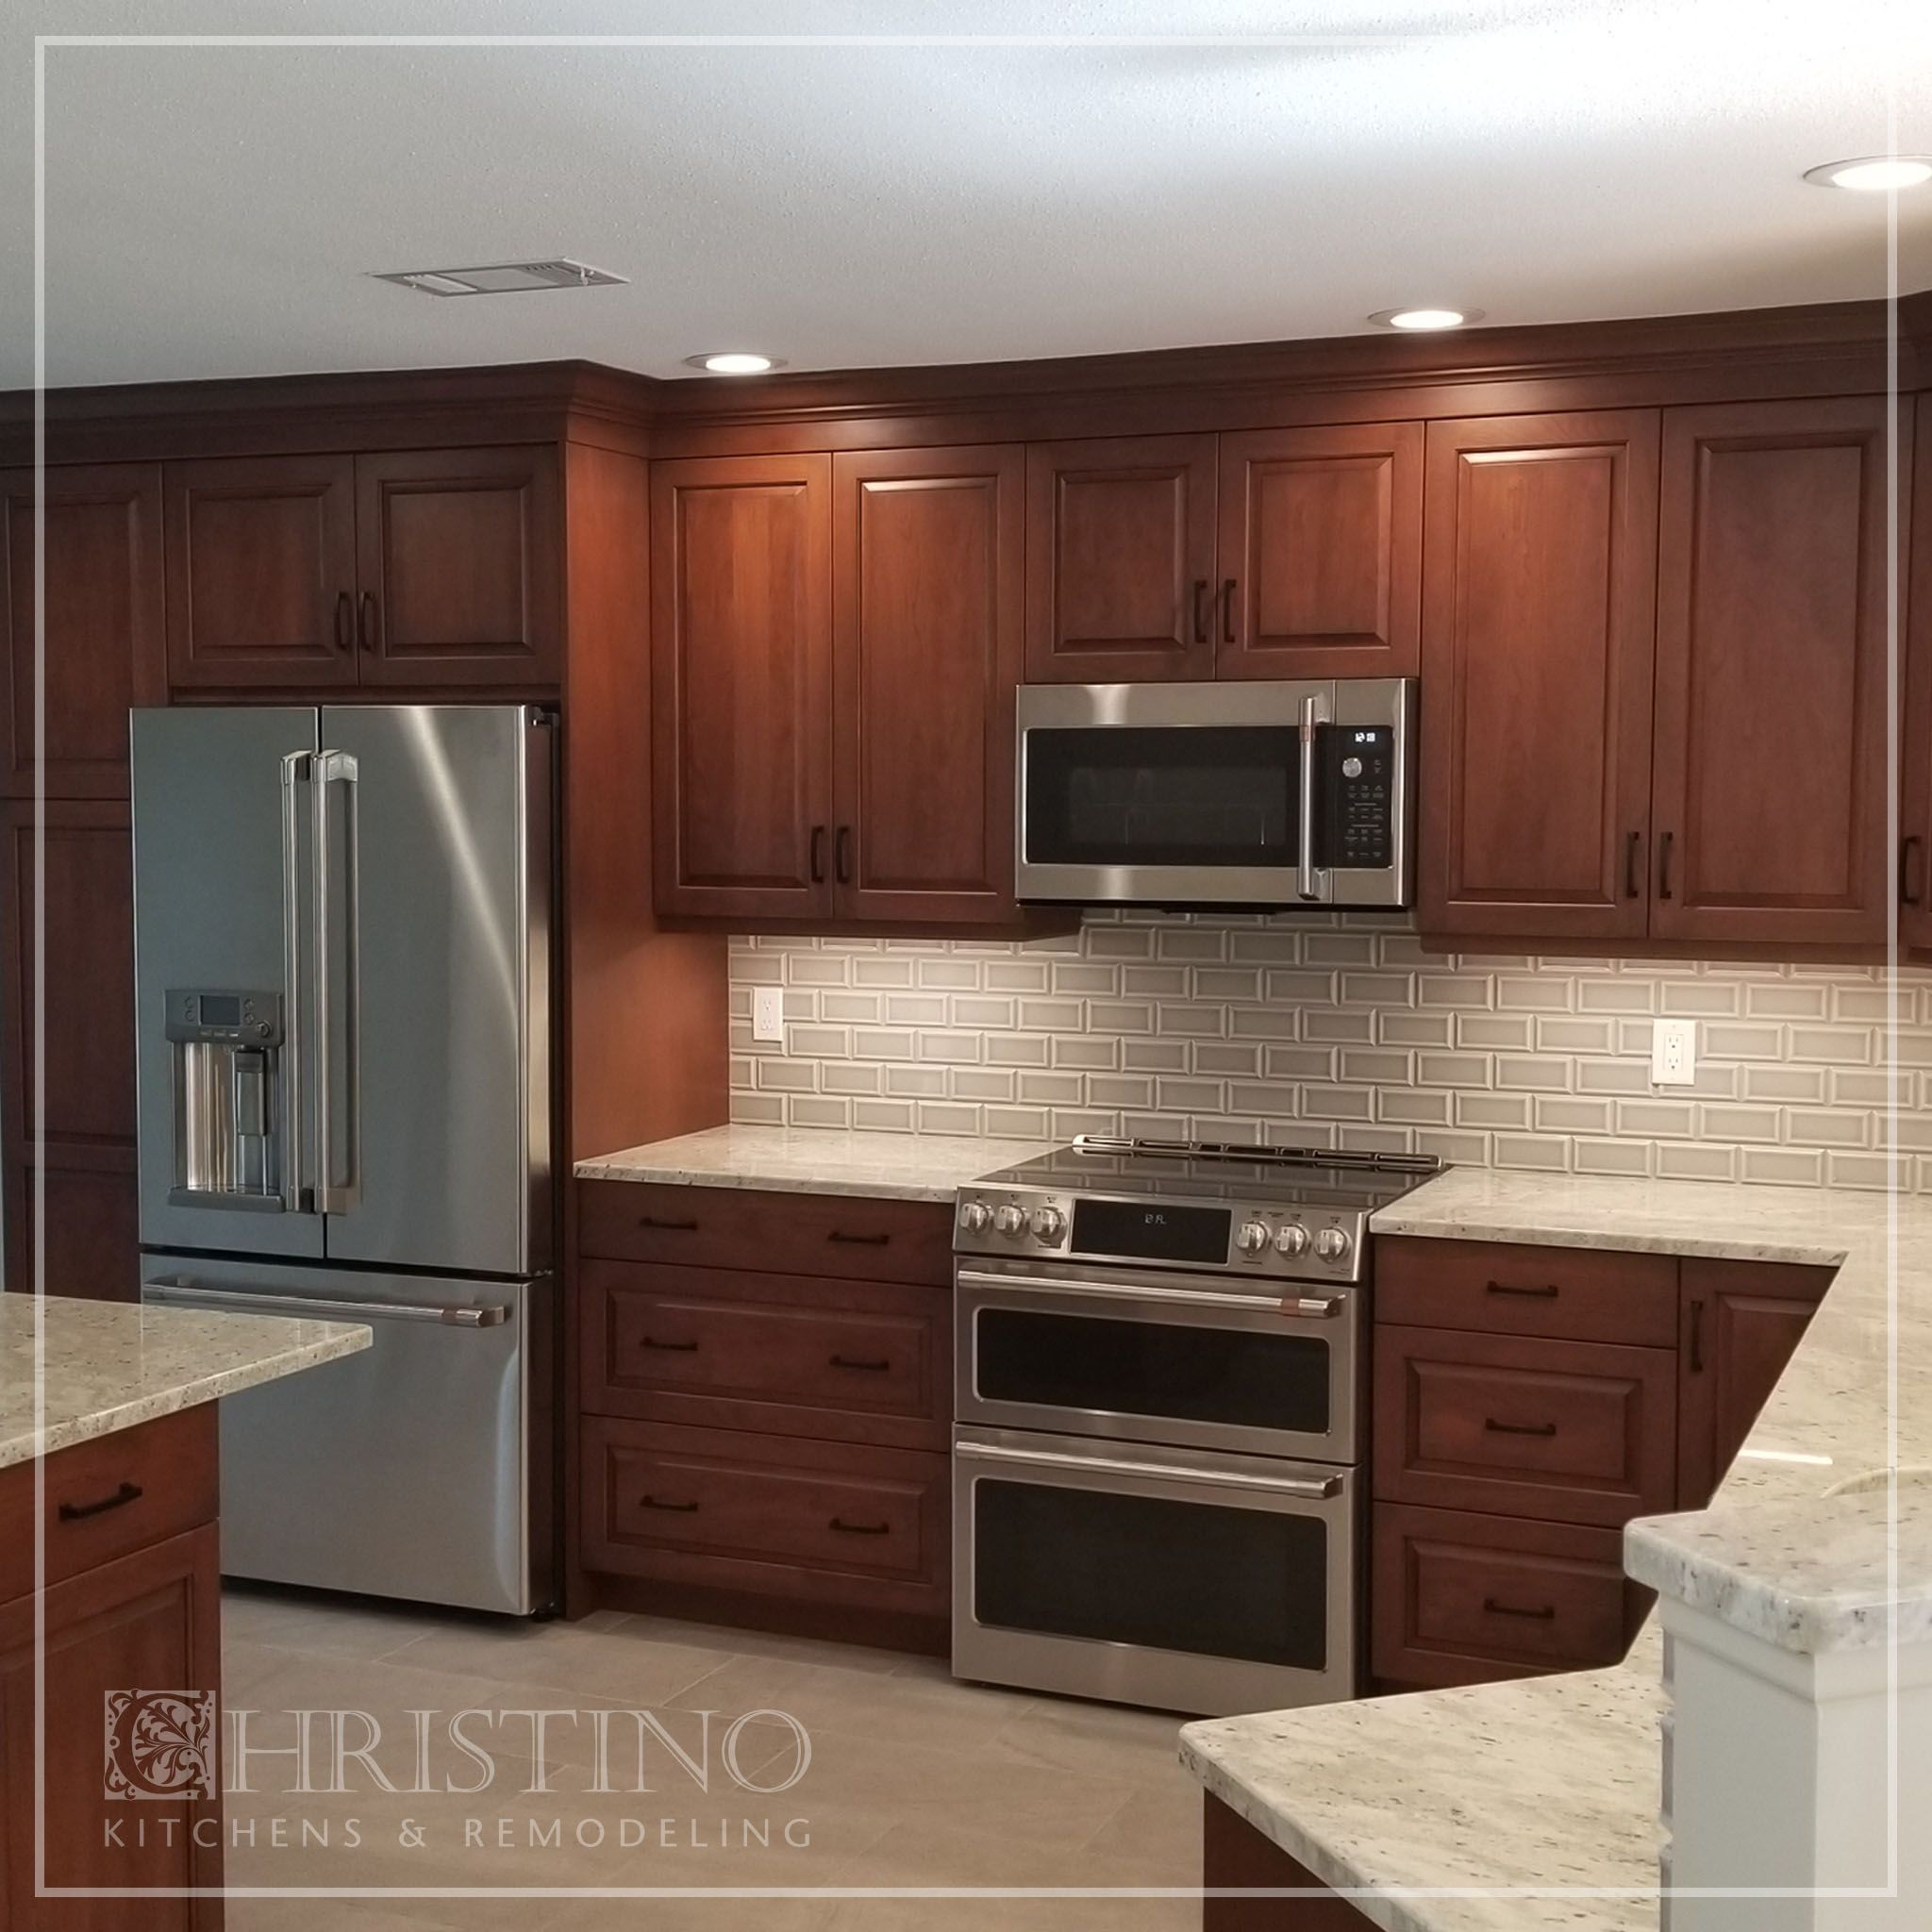 not a fan of white kitchens consider cherry cabinets cherry cabinets ar in 2020 kitchen on kitchen cabinets not white id=89480